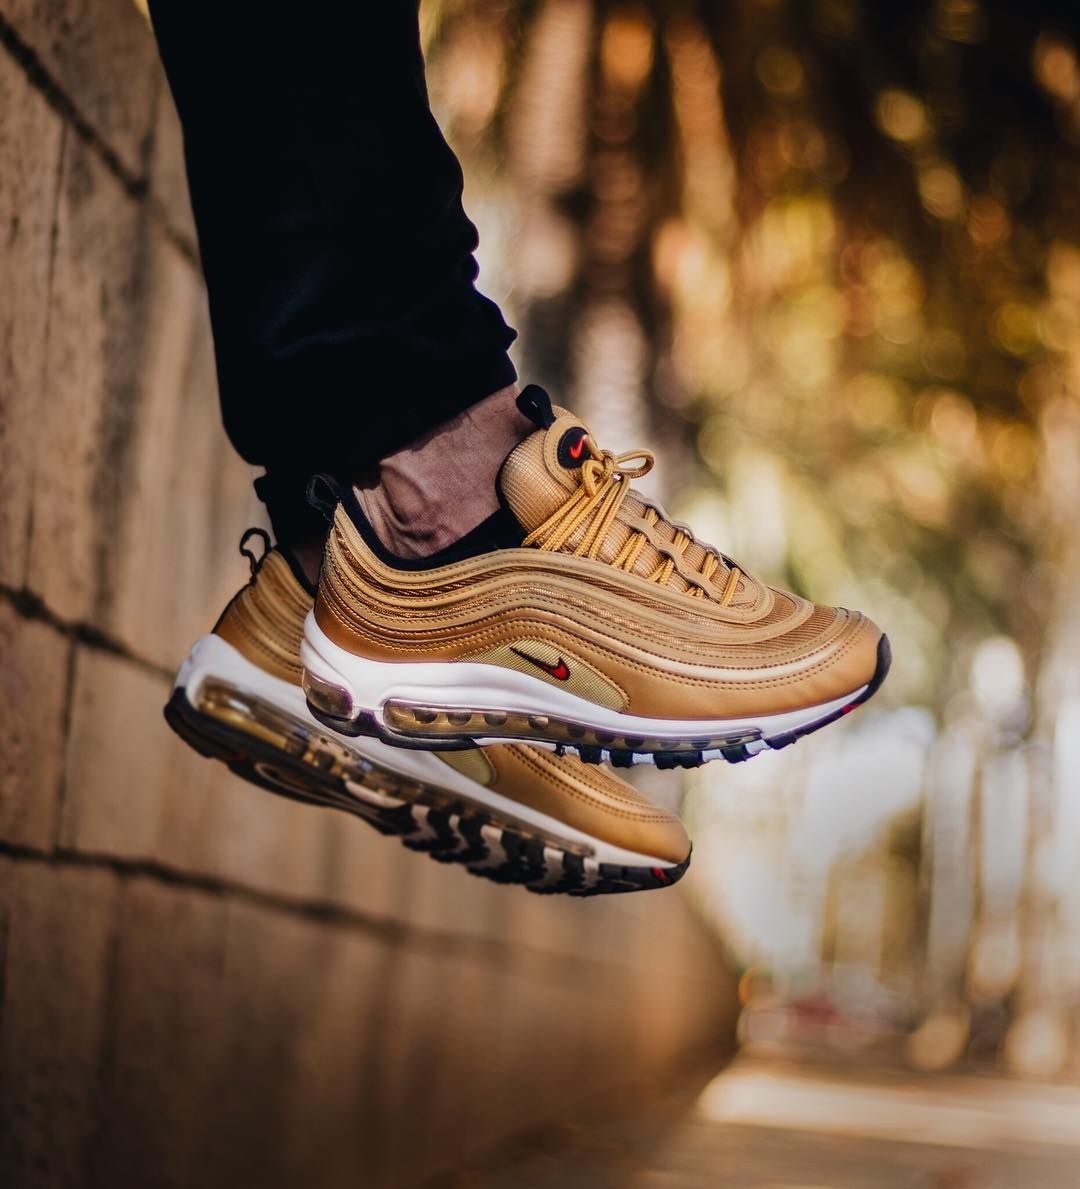 best service f8009 e64c3 Nike Air Max 97 OG QS 'Metallic Gold' | Nikes | Nike air max ...